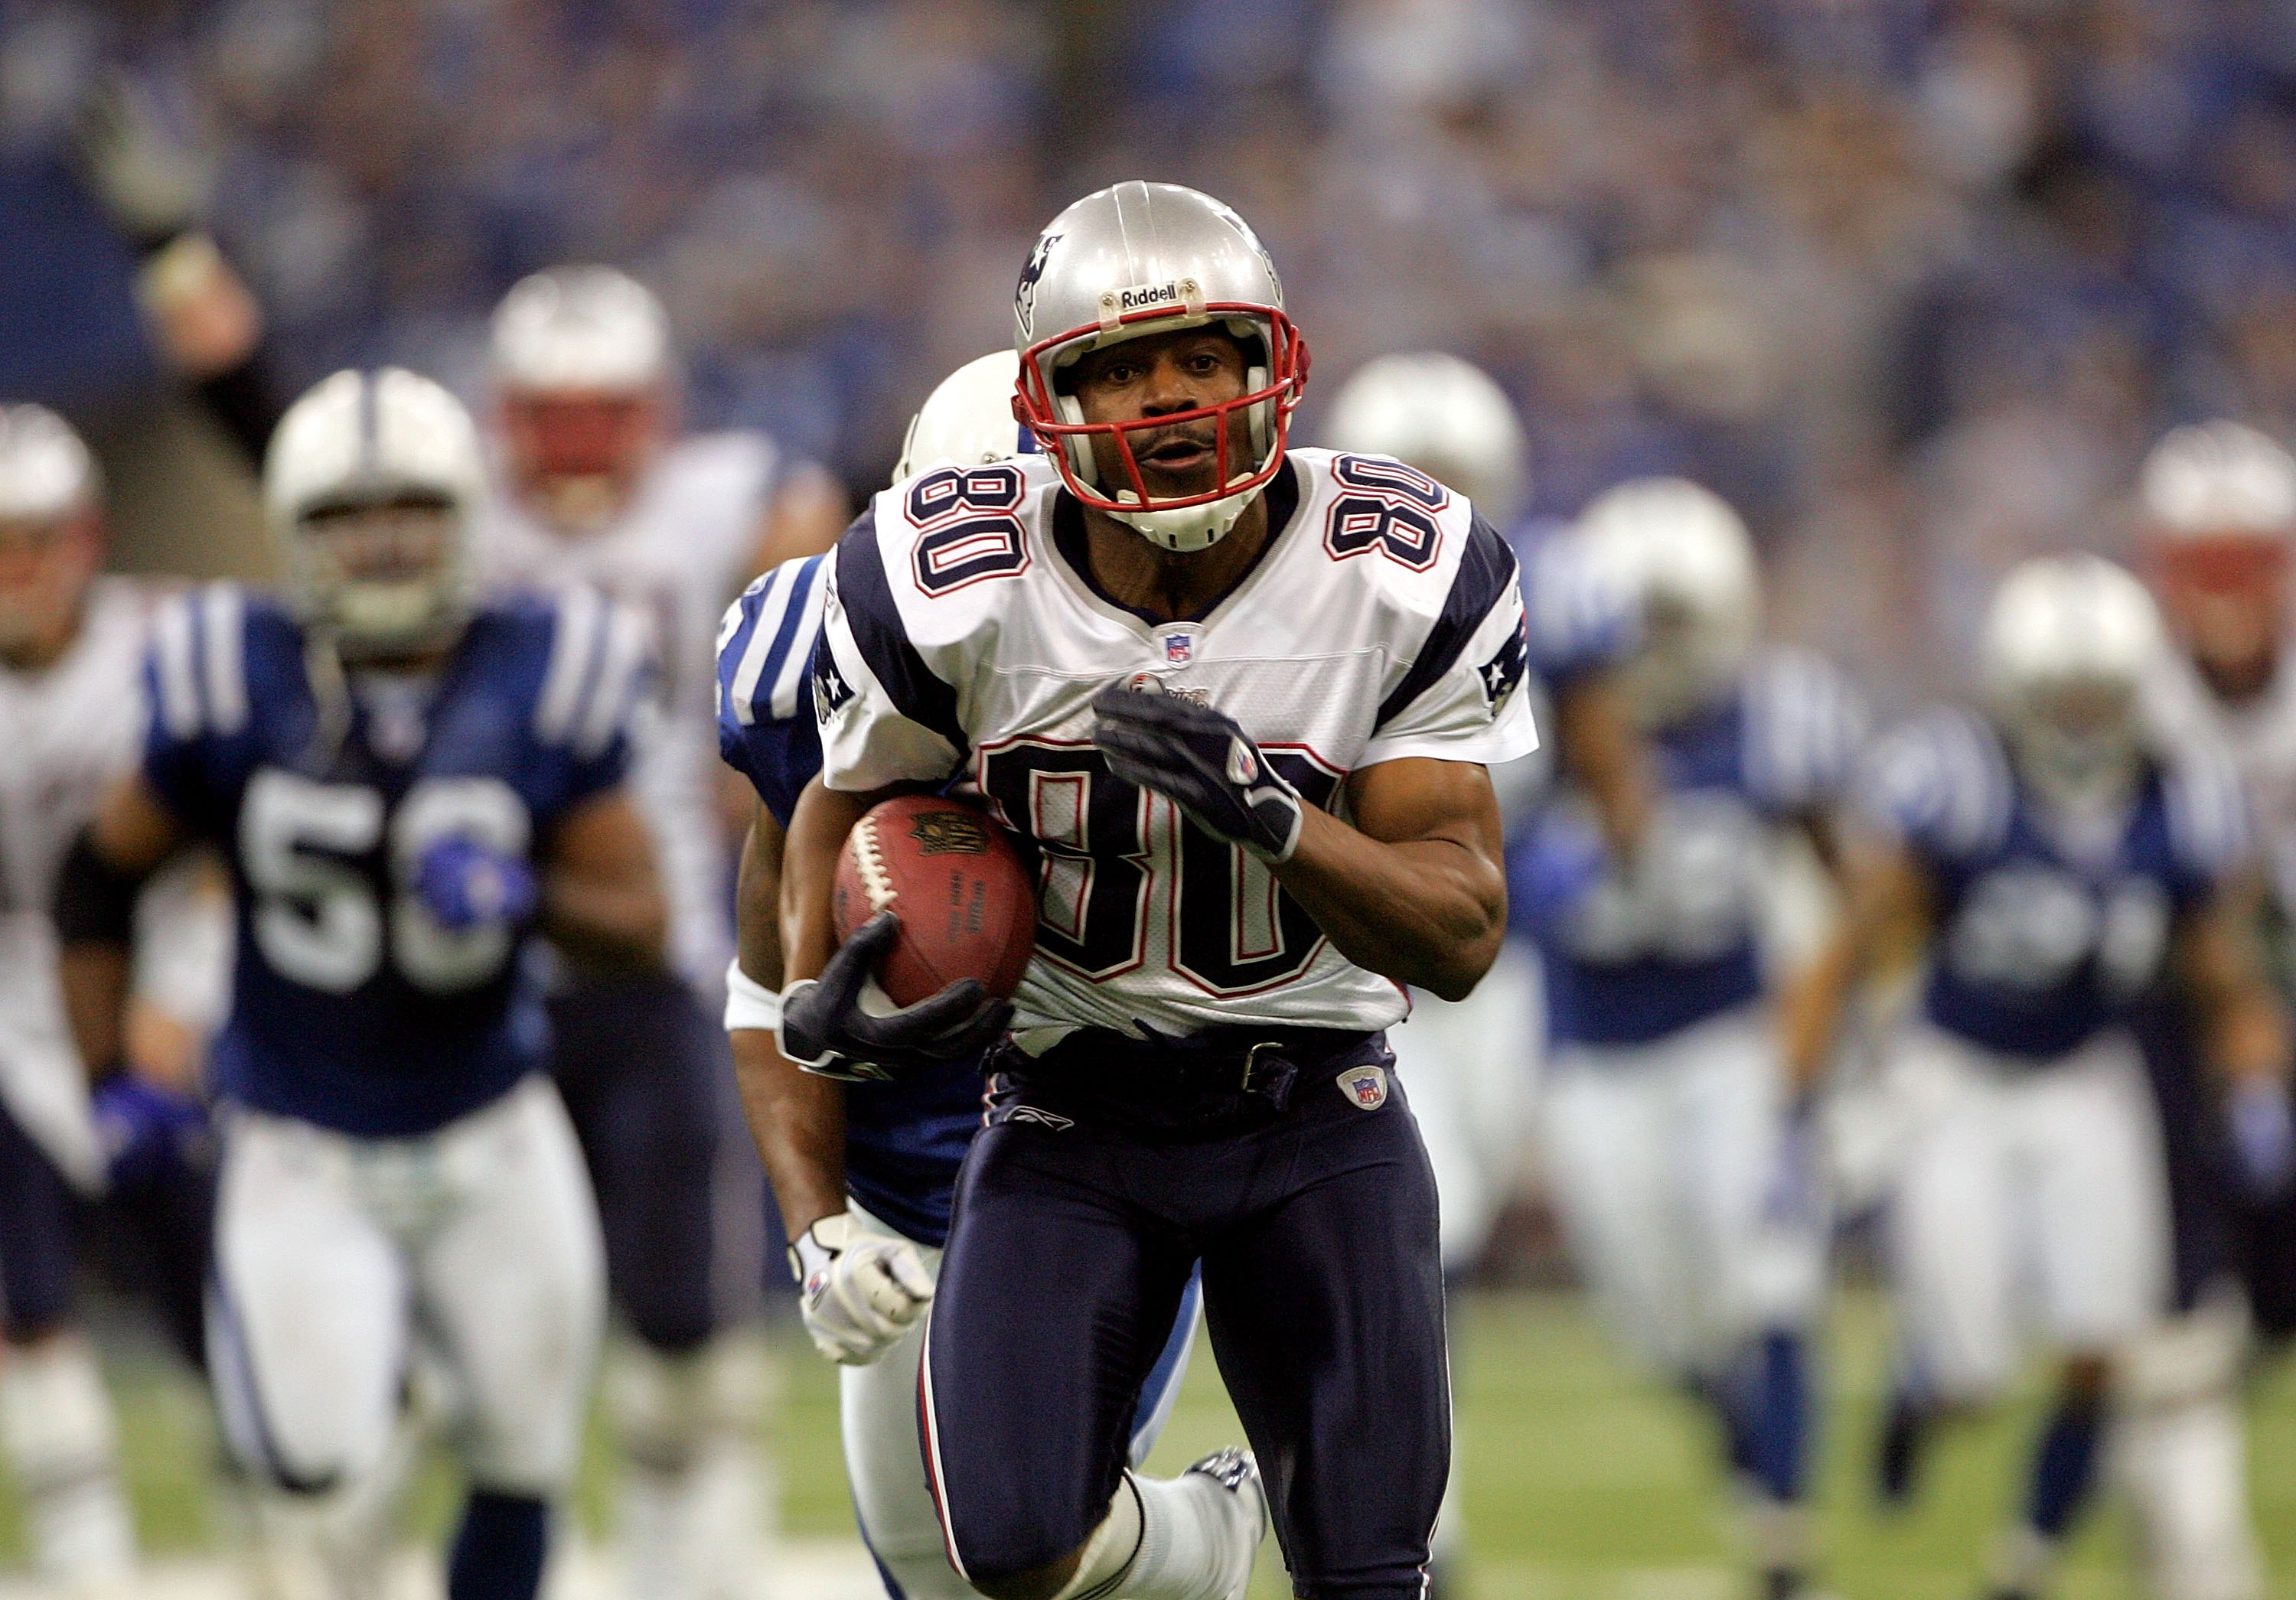 INDIANAPOLIS - JANUARY 21:  Troy Brown #80 of the New England Patriots runs the ball against the Indianapolis Colts during the AFC Championship Game on January 21, 2007 at the RCA Dome in Indianapolis, Indiana.  (Photo by Doug Pensinger/Getty Images)